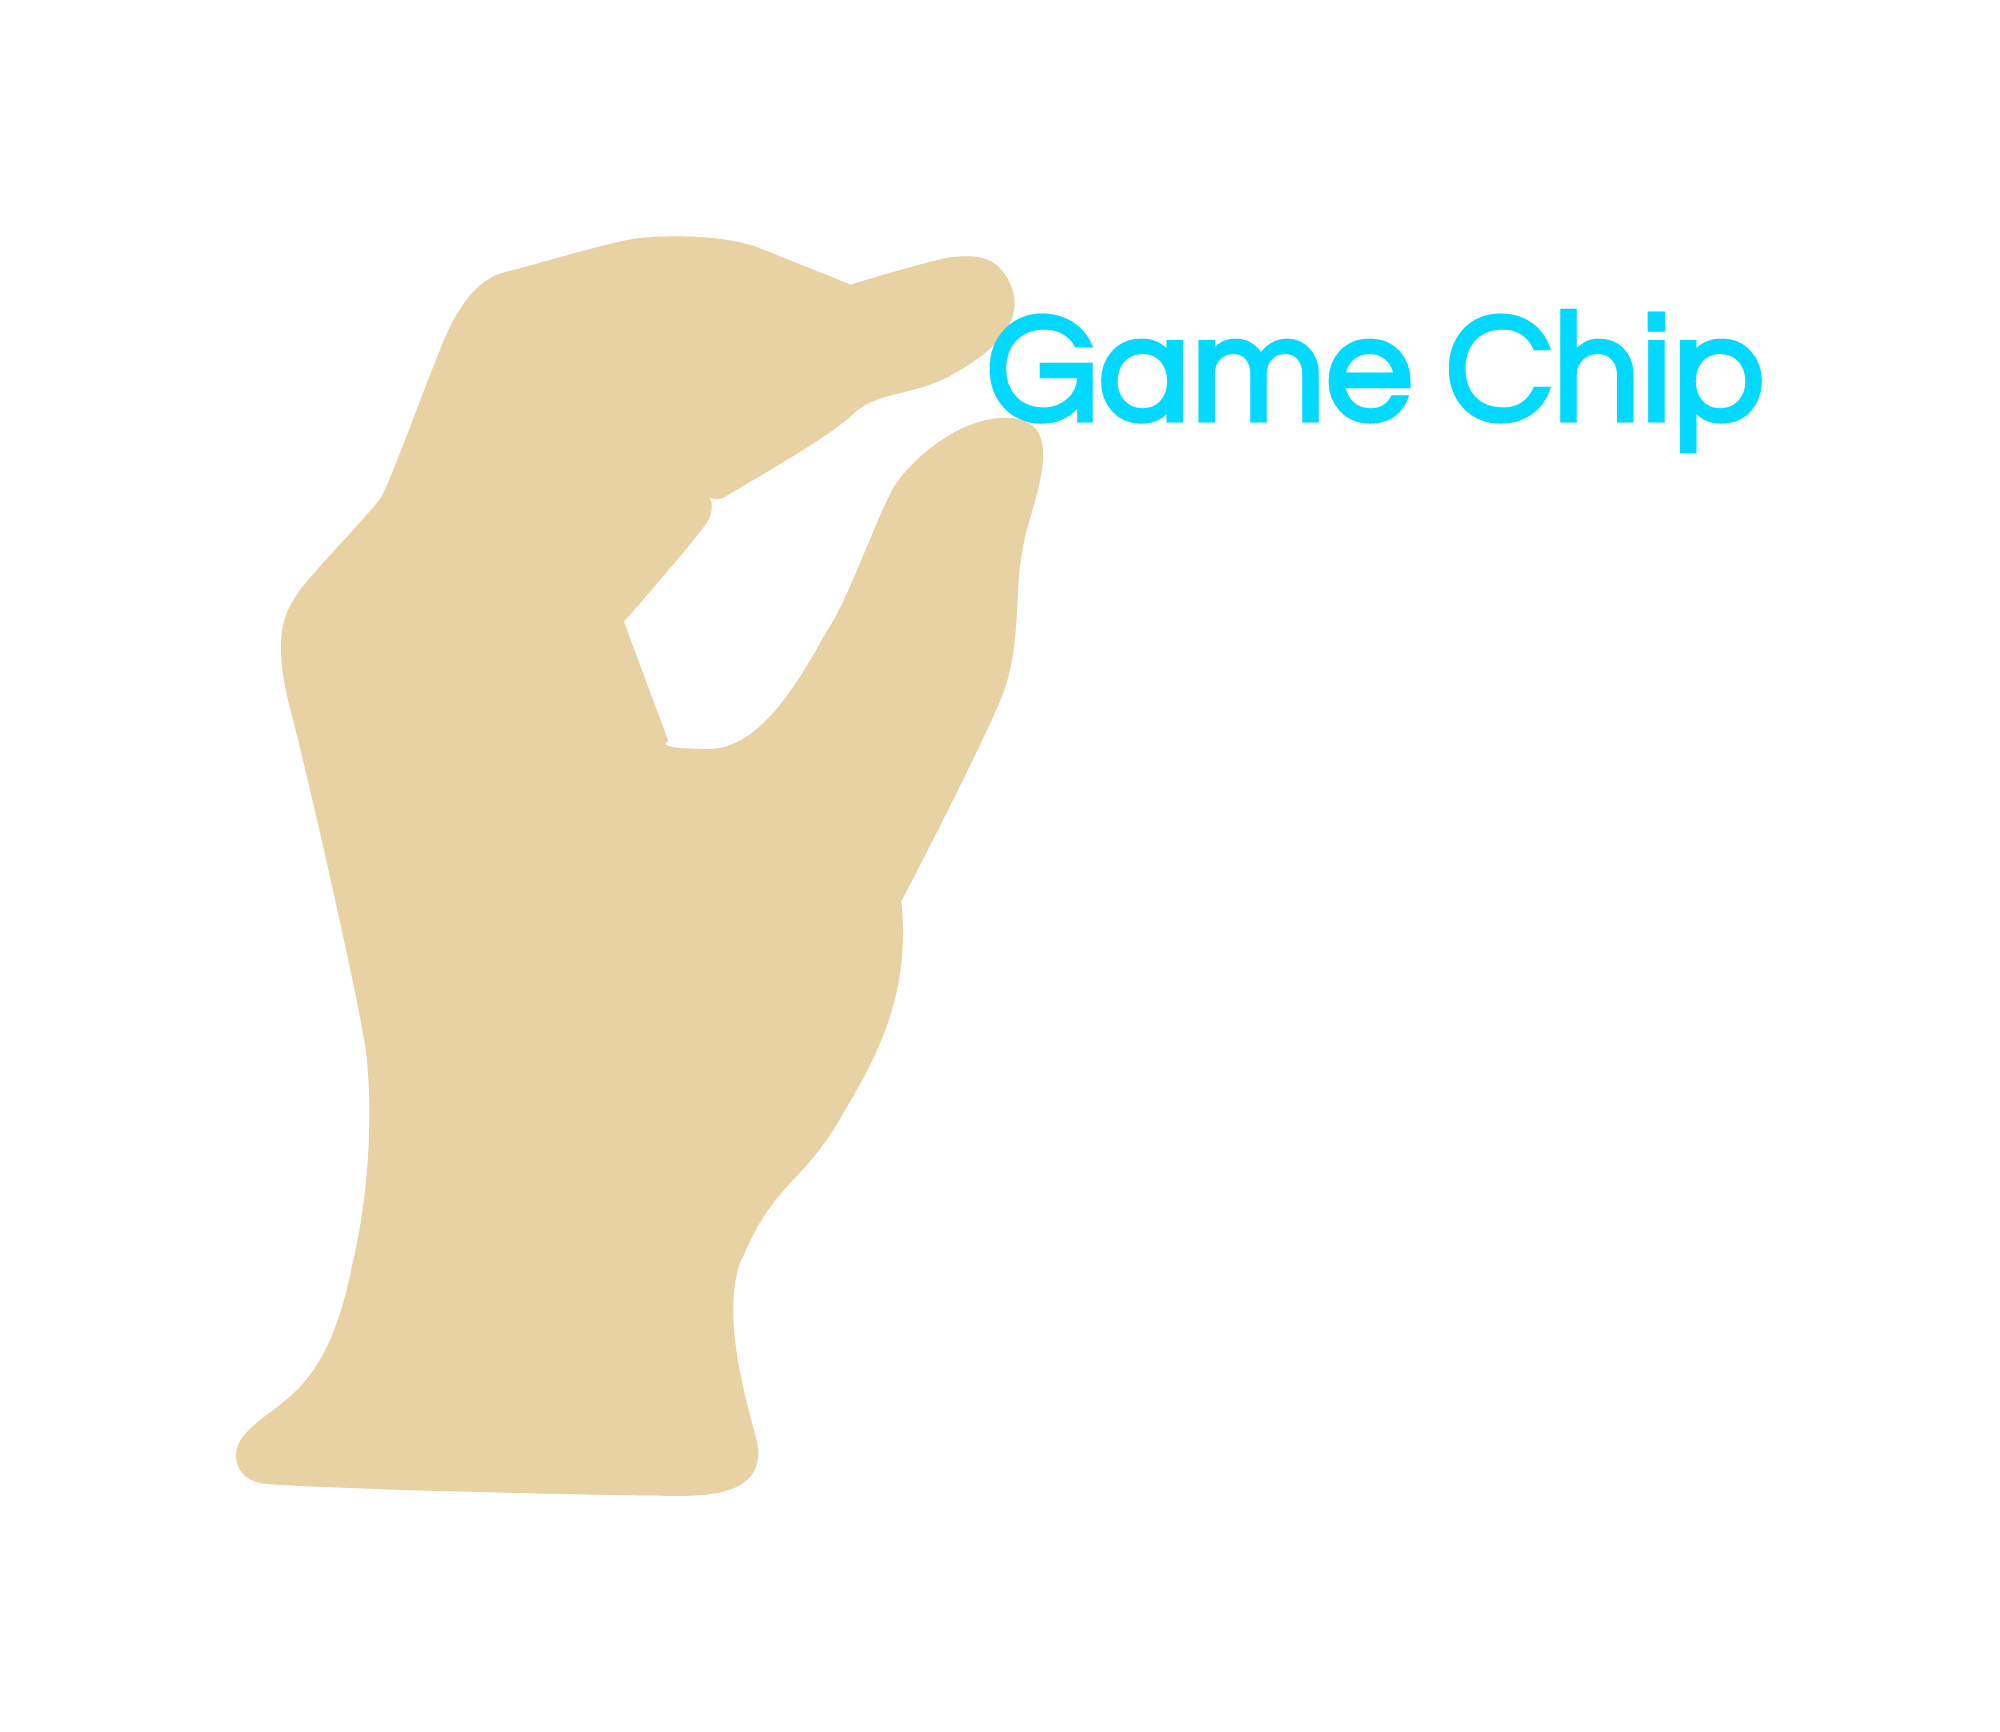 Game Chip